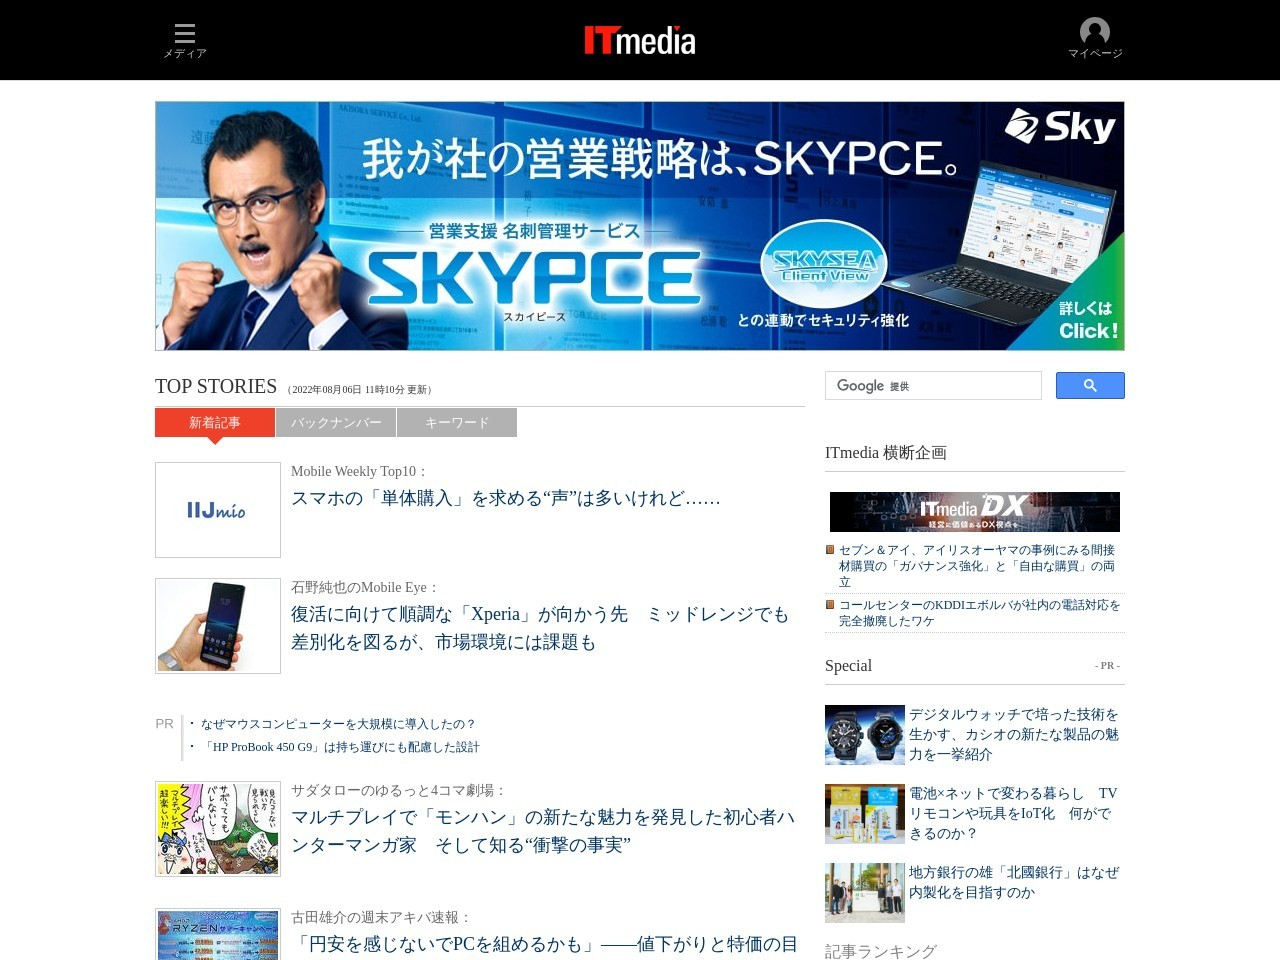 http://www.itmedia.co.jp/news/articles/1505/13/news156.html